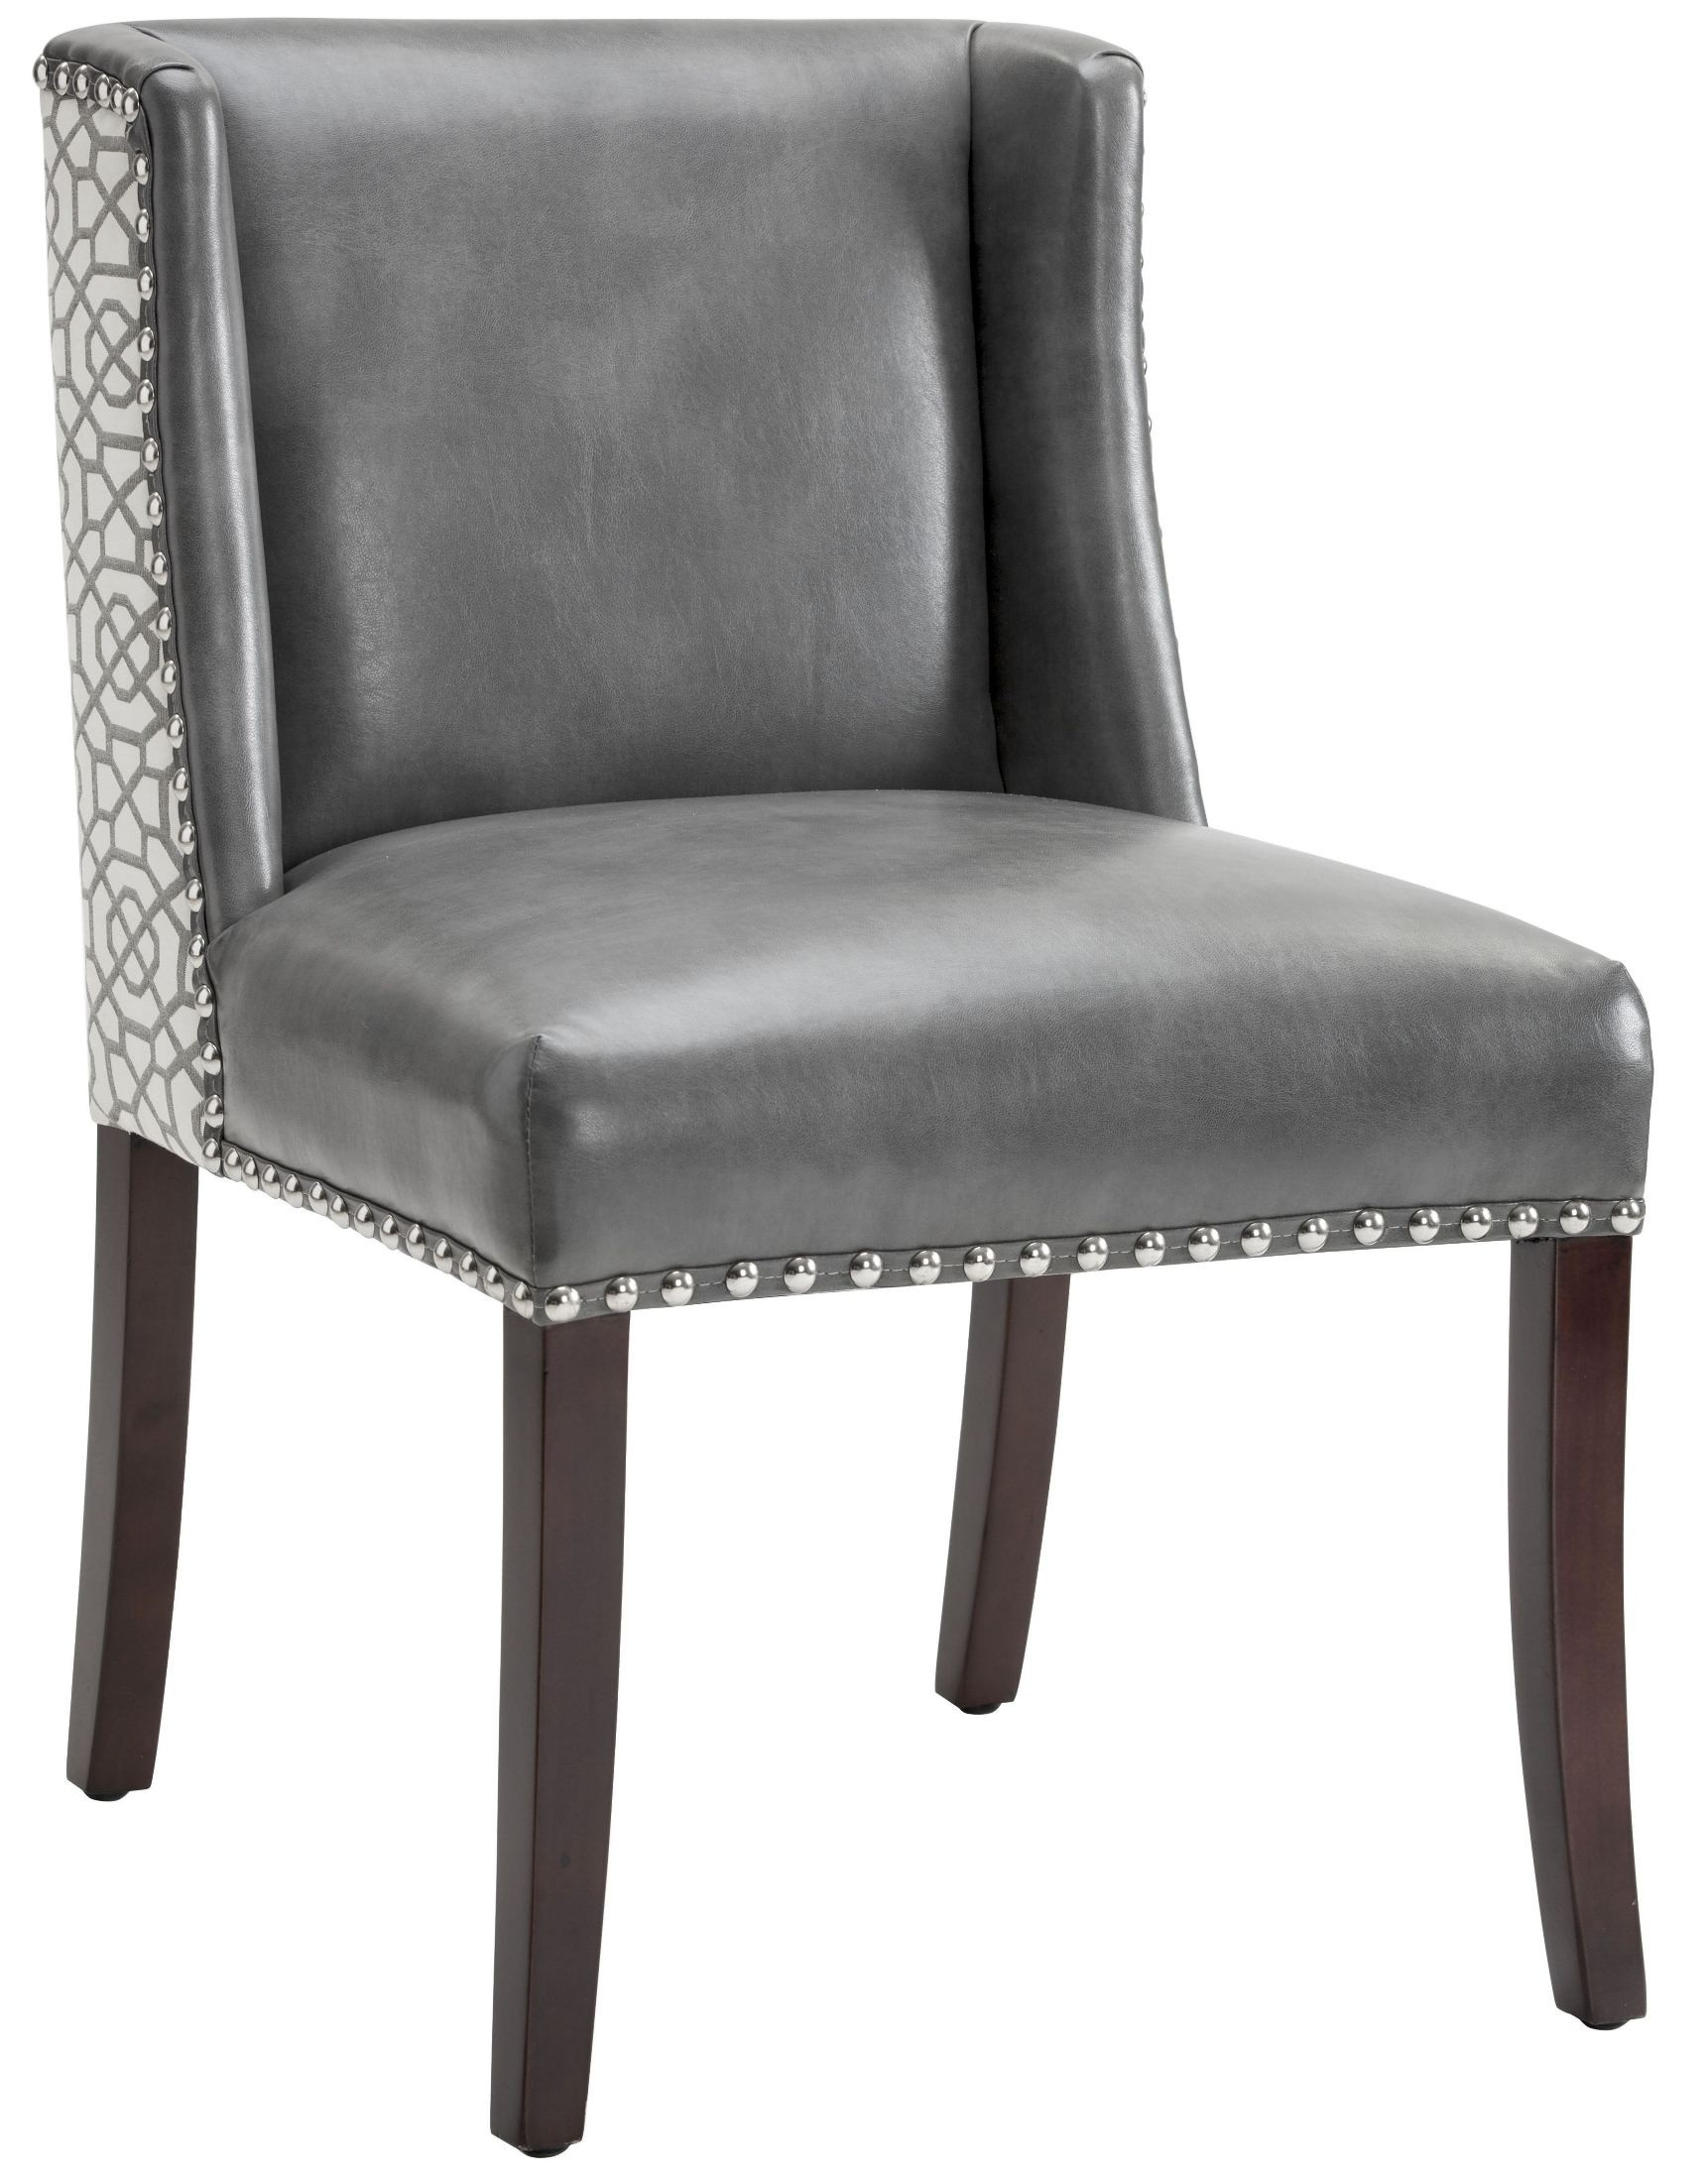 marlin grey leather and diamond fabric dining chair 101088 sunpan modern home. Black Bedroom Furniture Sets. Home Design Ideas